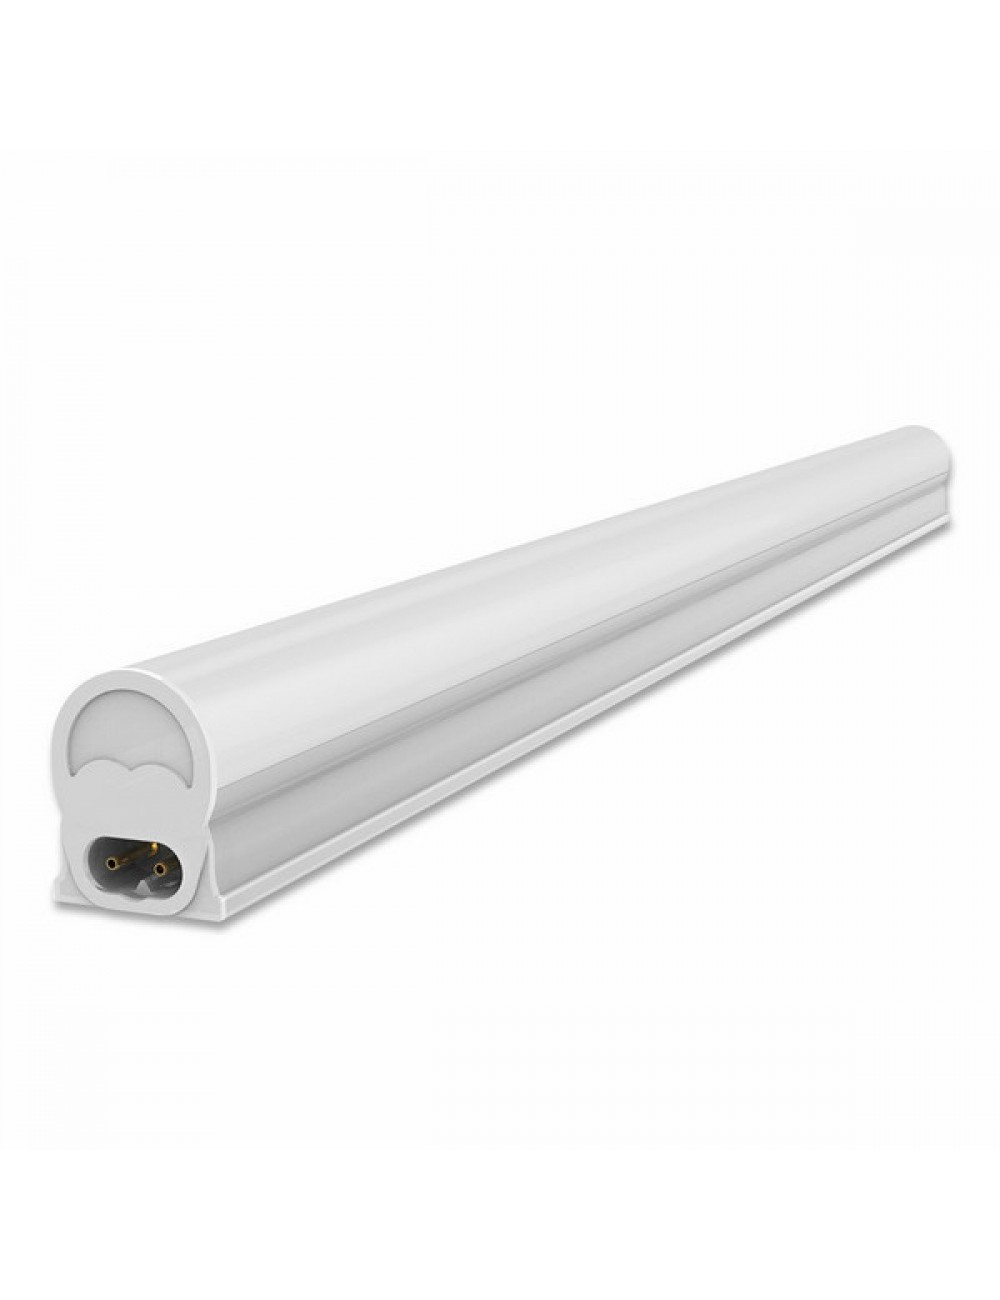 Tubo led t5 raccordabile plafoniera 14w lunghezza 120 cm v for Tubi luminosi led